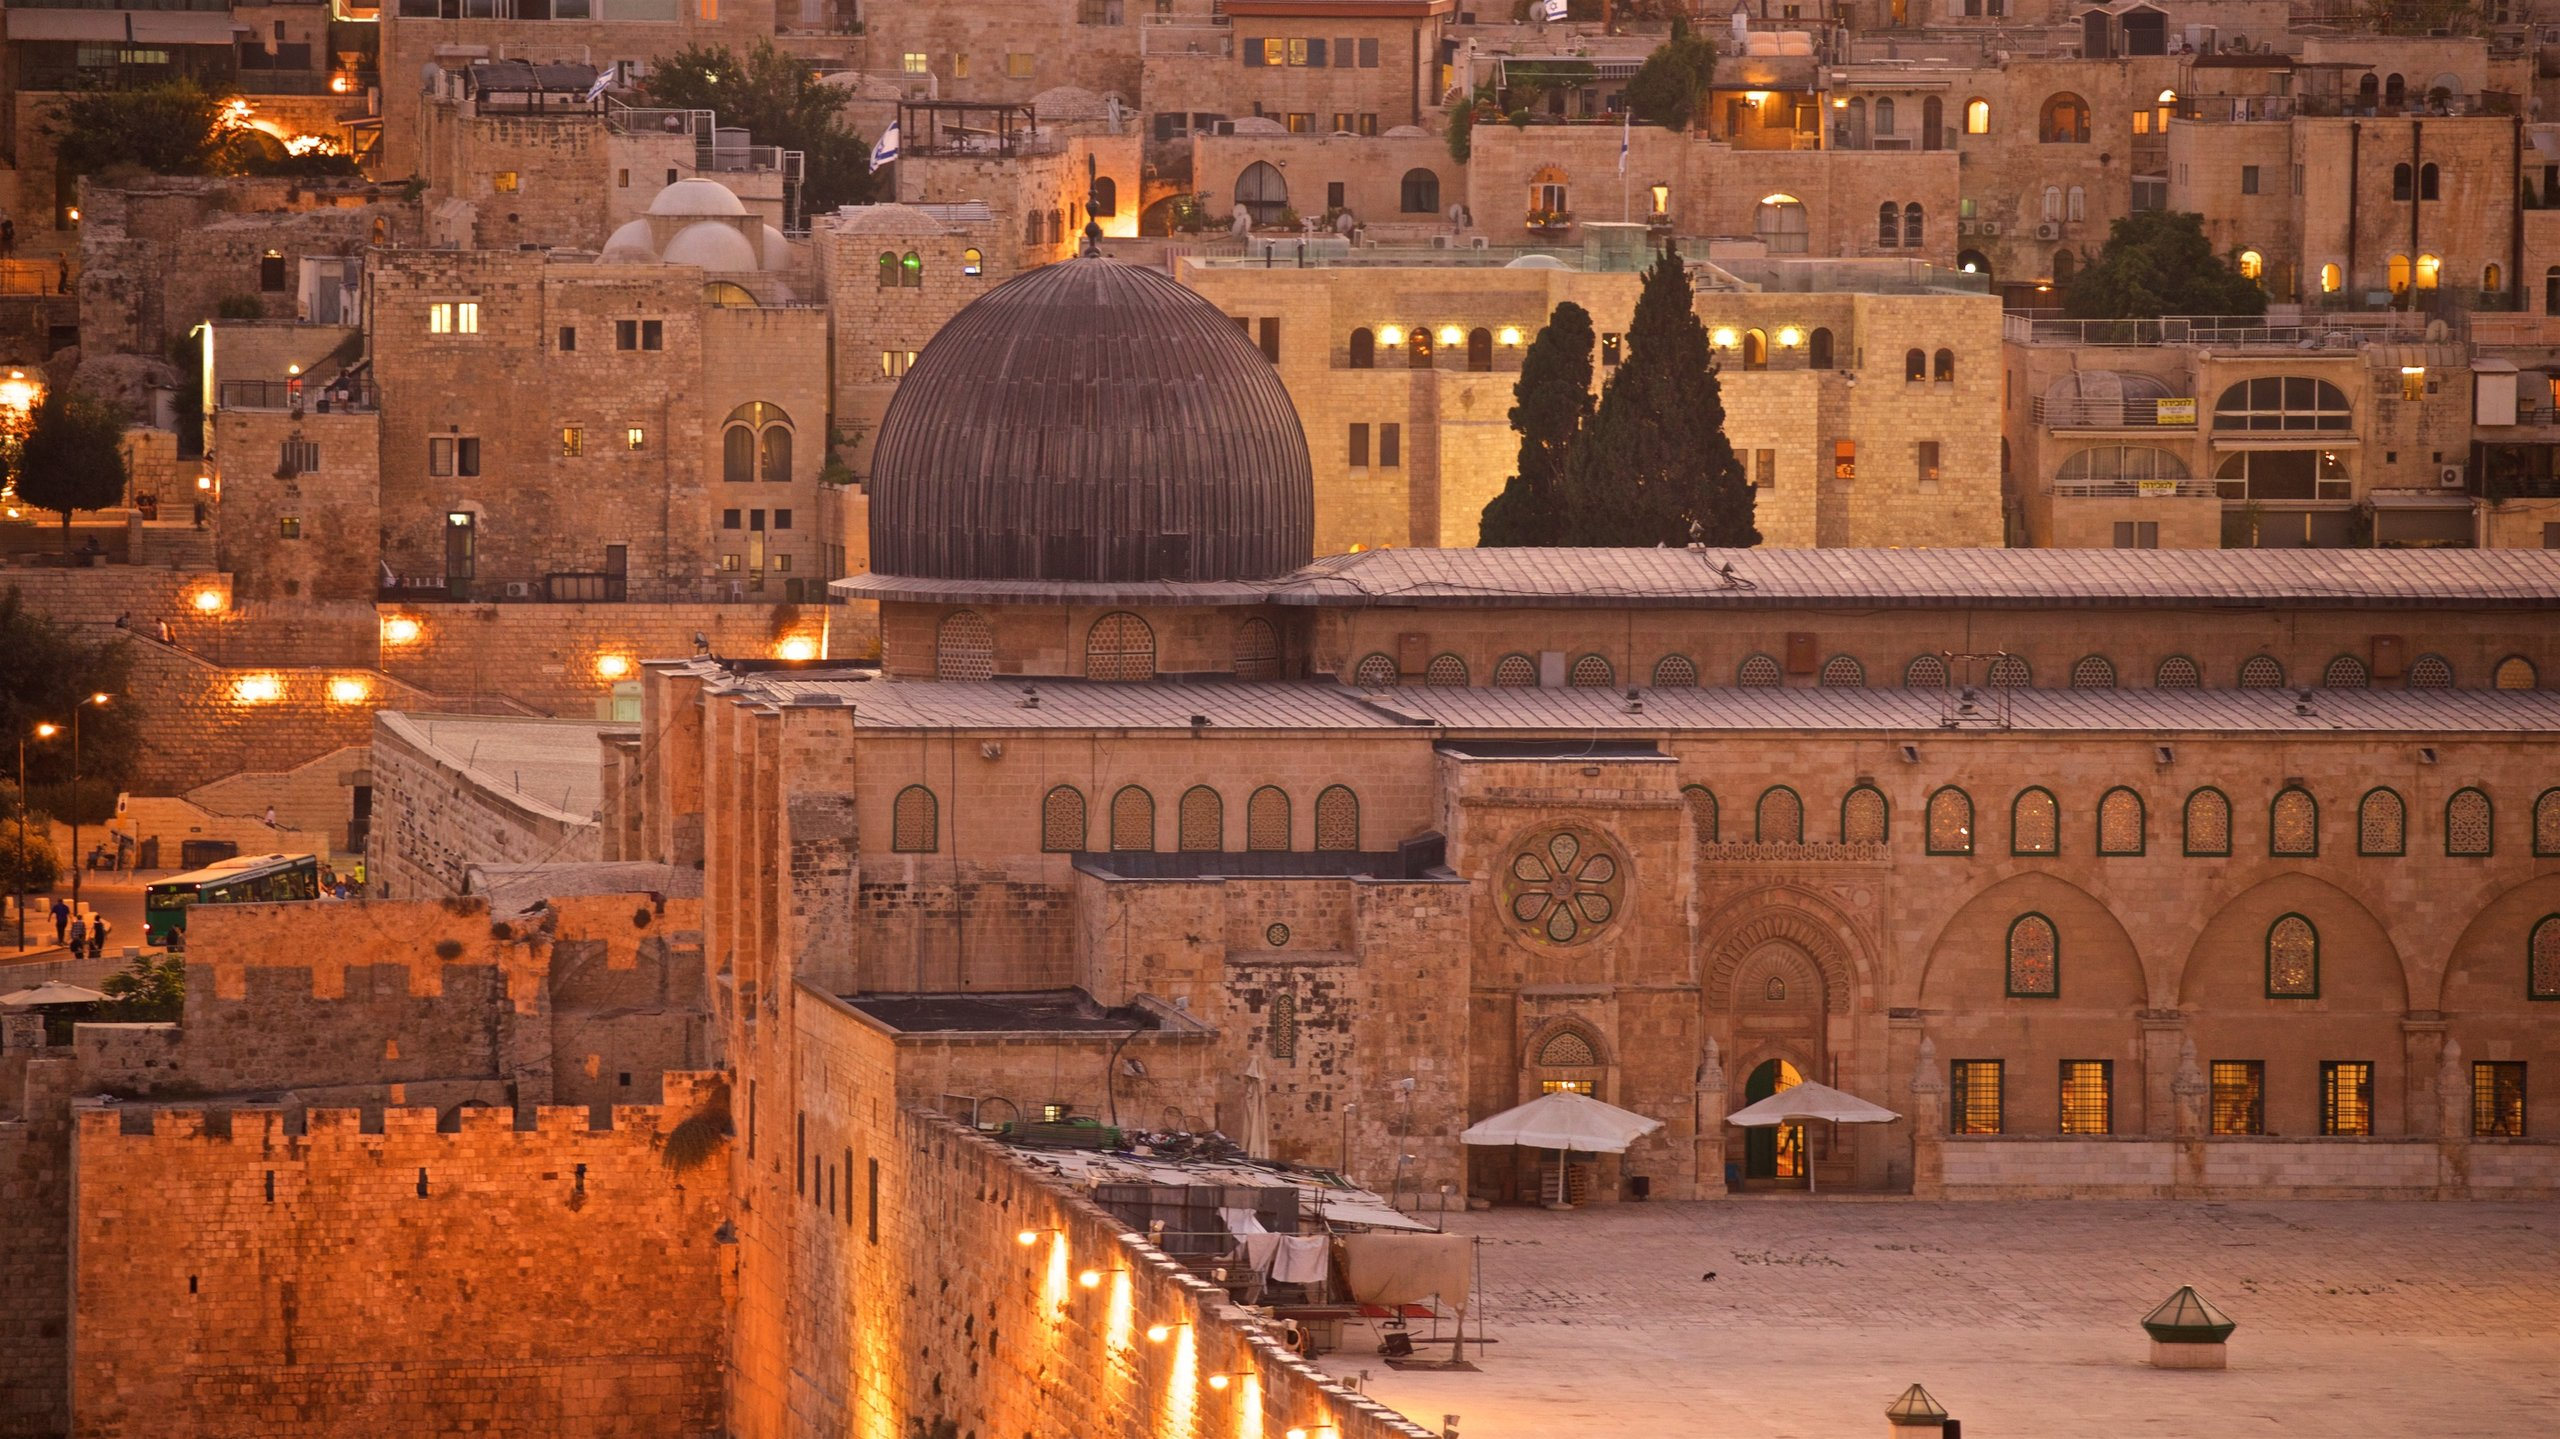 Part of the sacred Temple Mount site, this lead-domed structure is a fully functioning mosque. It is among the holiest sites in the Islamic world.